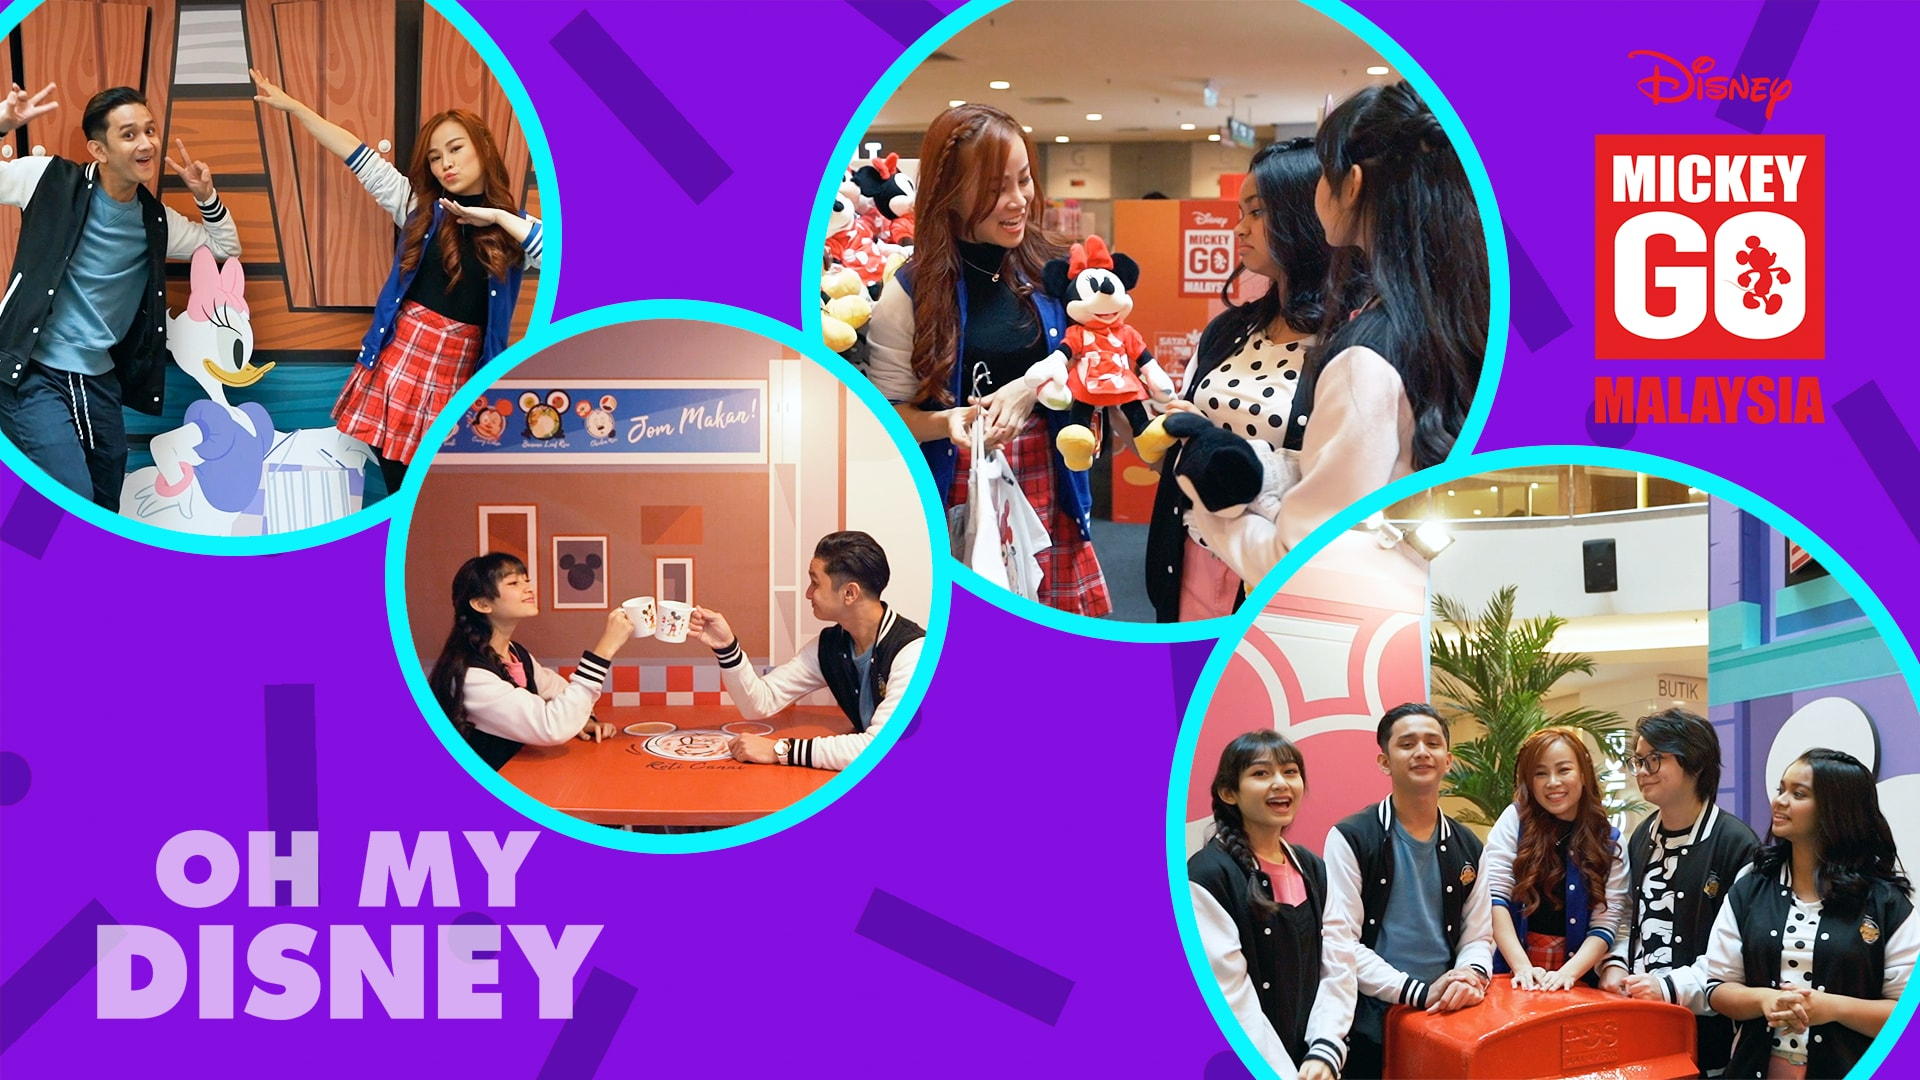 Disney Insider: Explore Disney's Mickey Go Malaysia With The Club Mickey Mouse Mouseketeers!